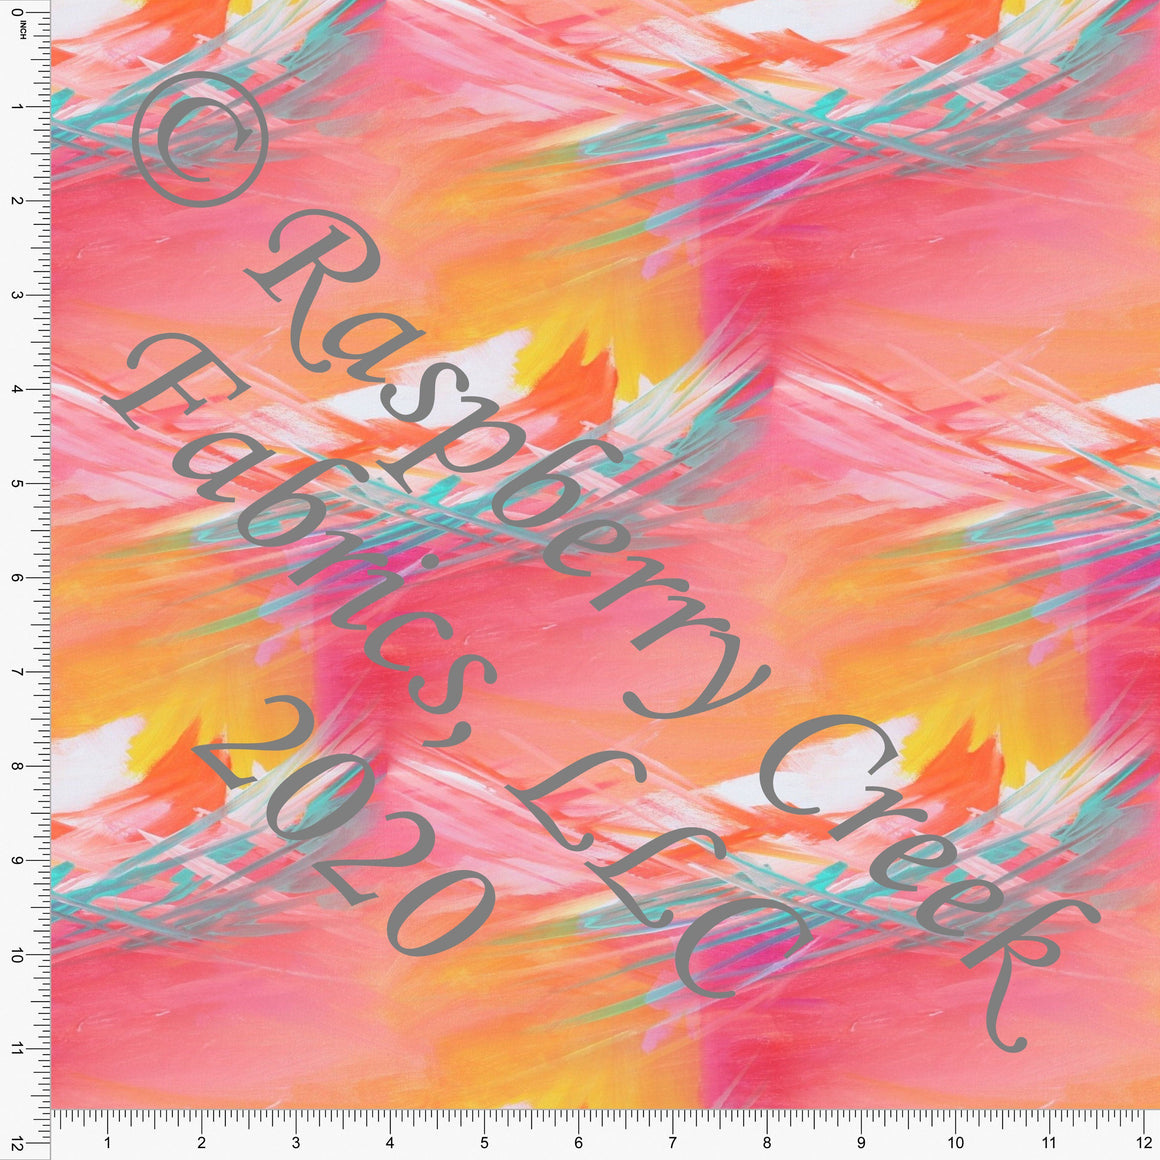 Fuchsia Orange and Light Blue Abstract Brushed Stroke Print Double Brushed Poly Knit Fabric, By Theresa Namenye for CLUB Fabrics - Raspberry Creek Fabrics